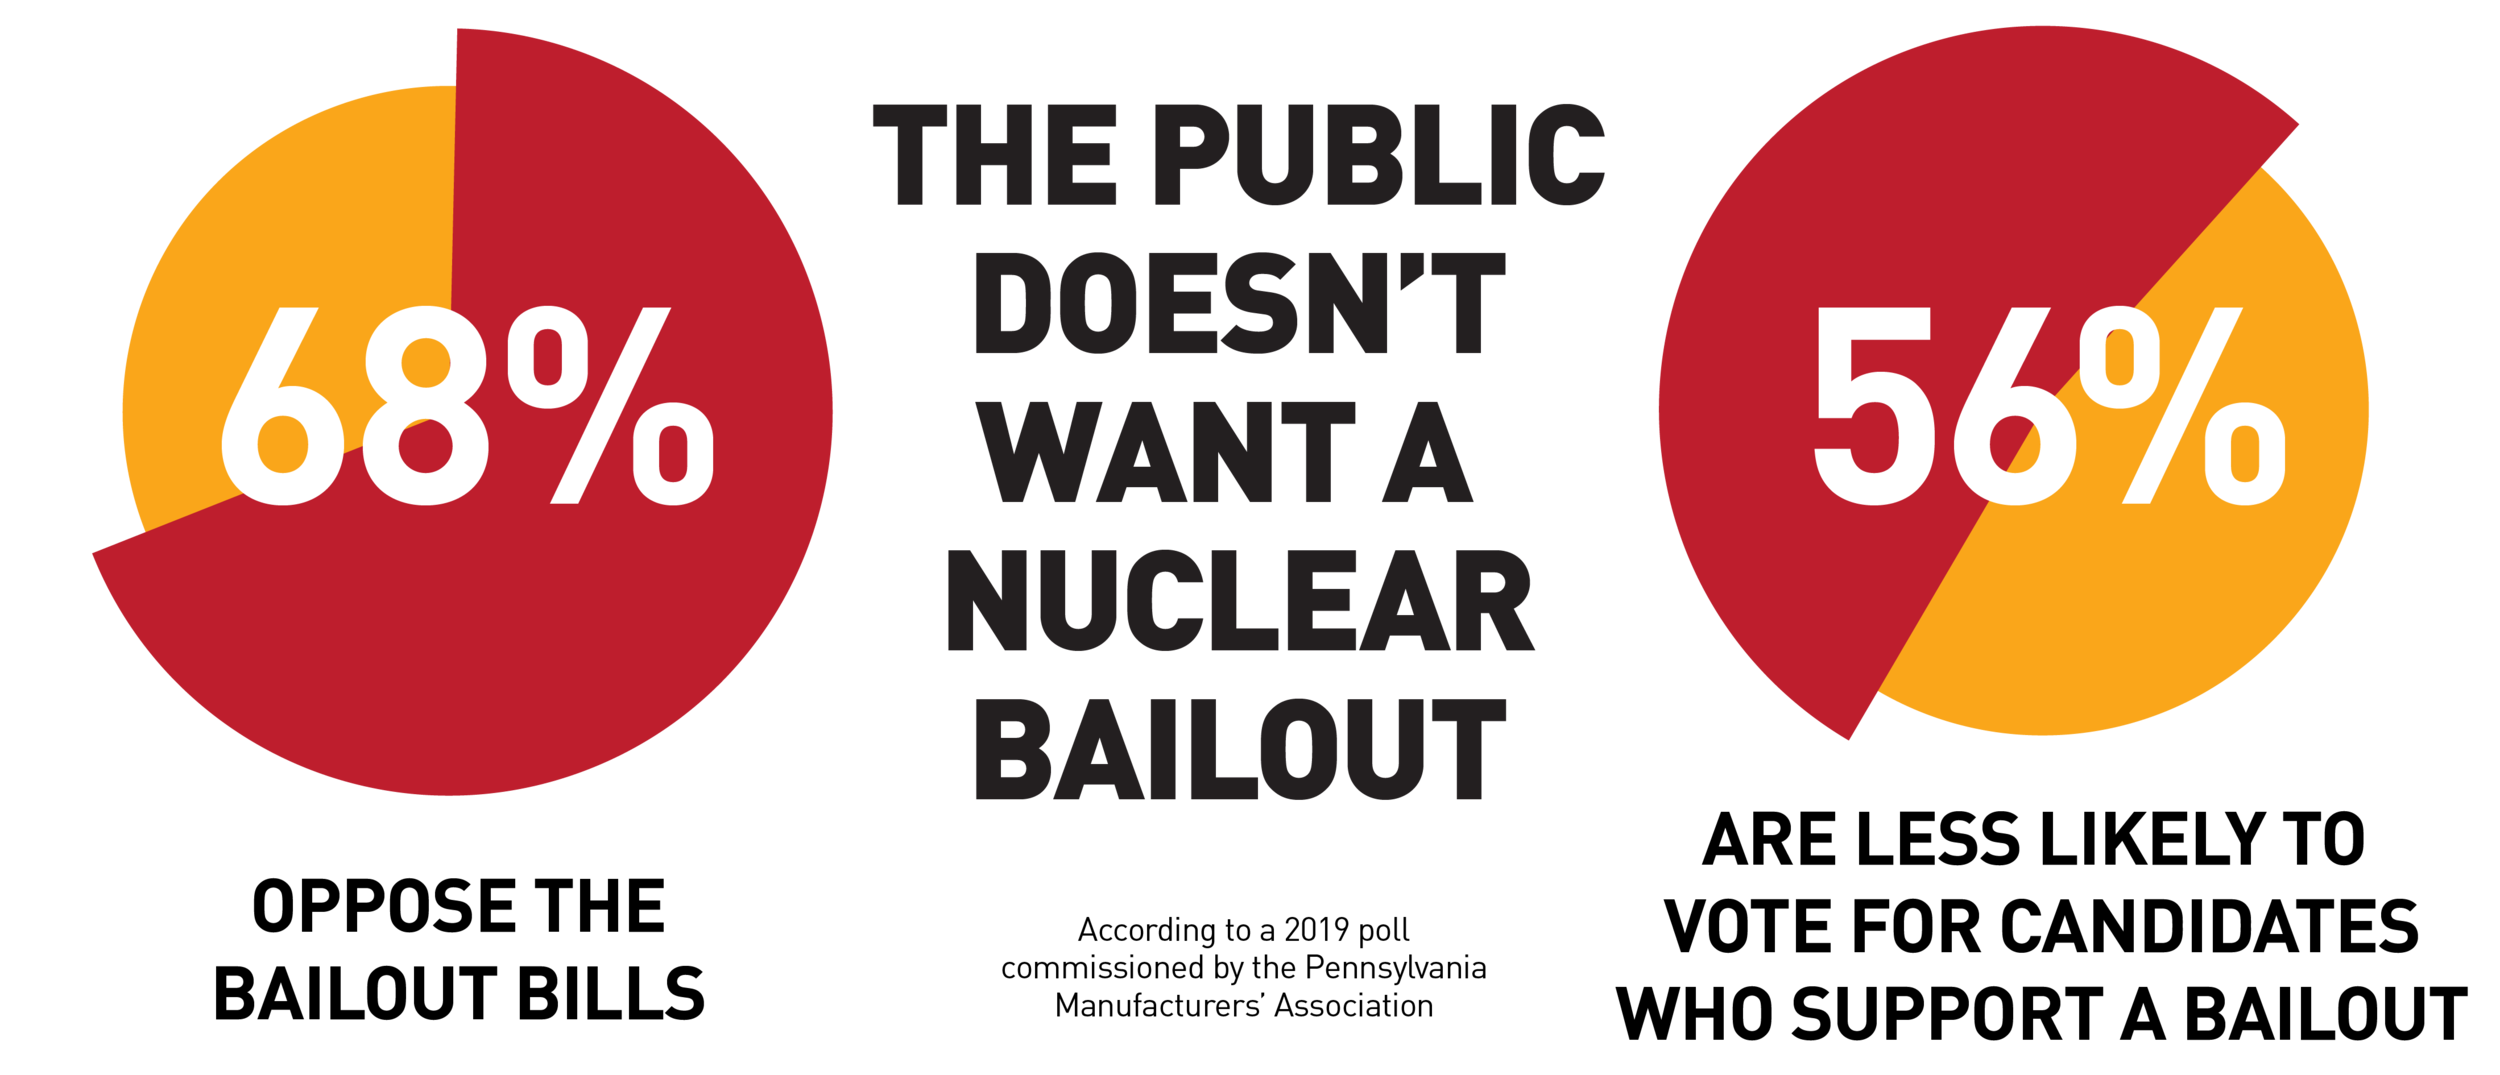 The majority of PA ratepayers do not want a nuclear bailout.